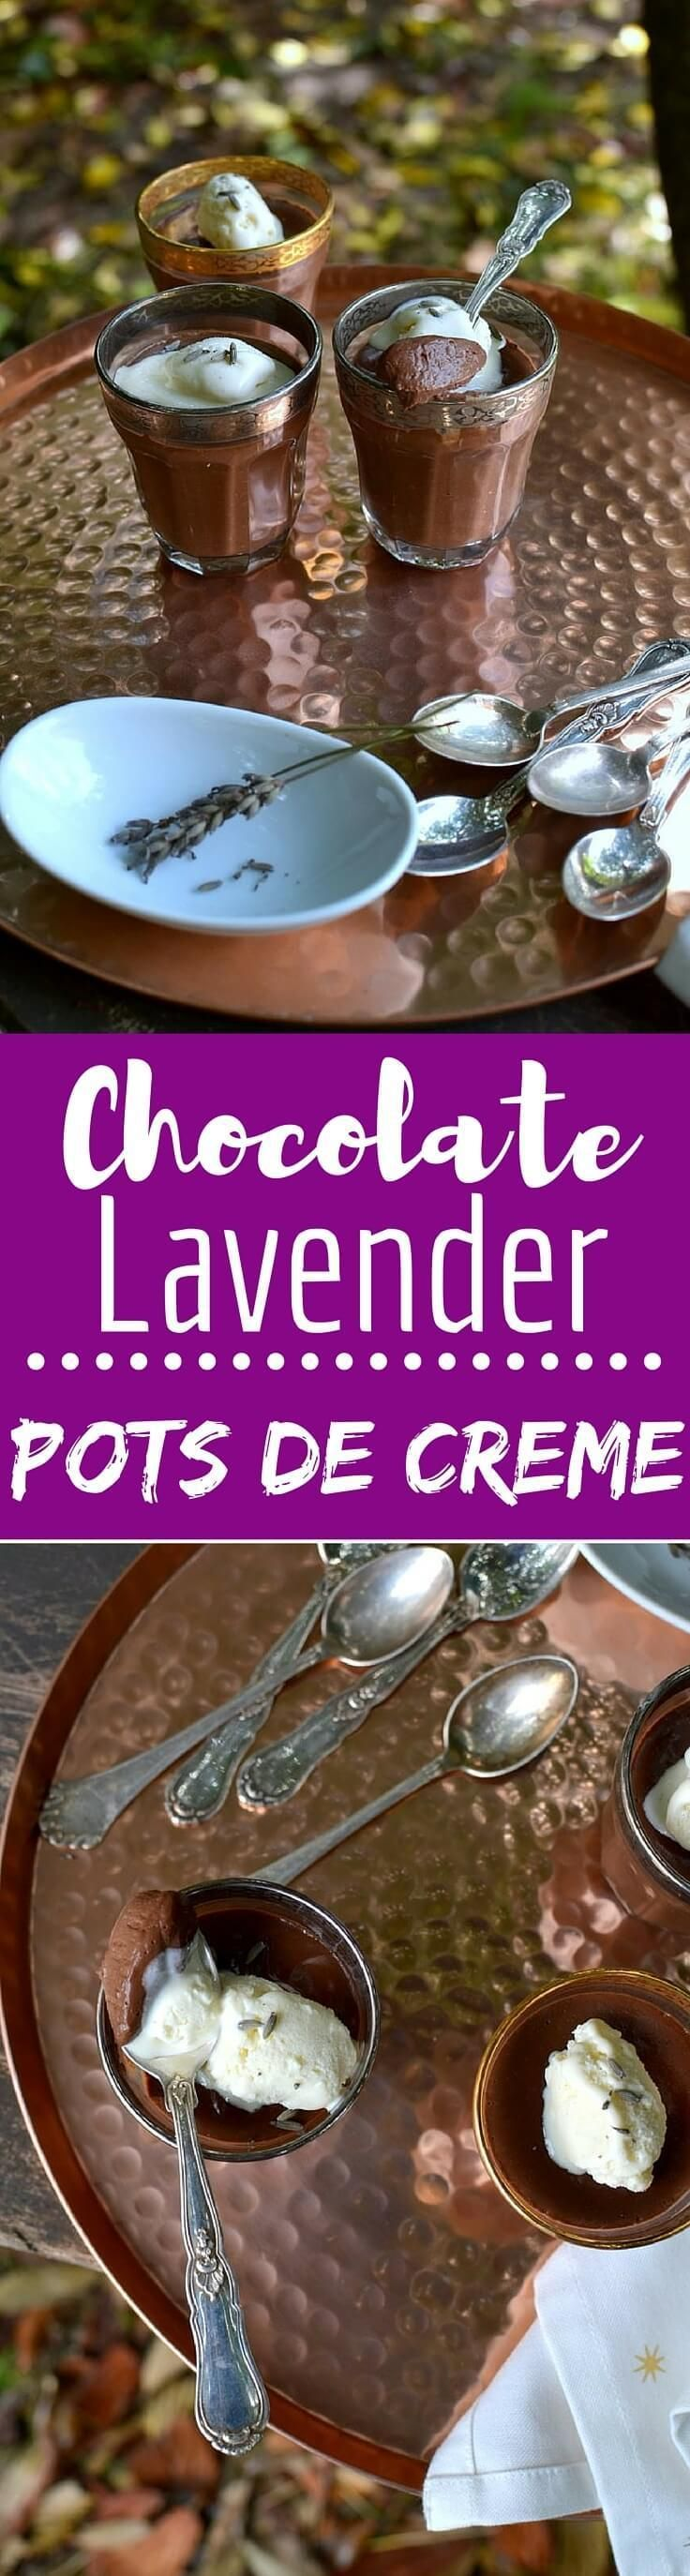 Chocolate Lavender Pots de Creme: A show-stopper of a French Dessert, these divinely rich and intensely chocolatey Pots de Creme are perfect for special occasions!